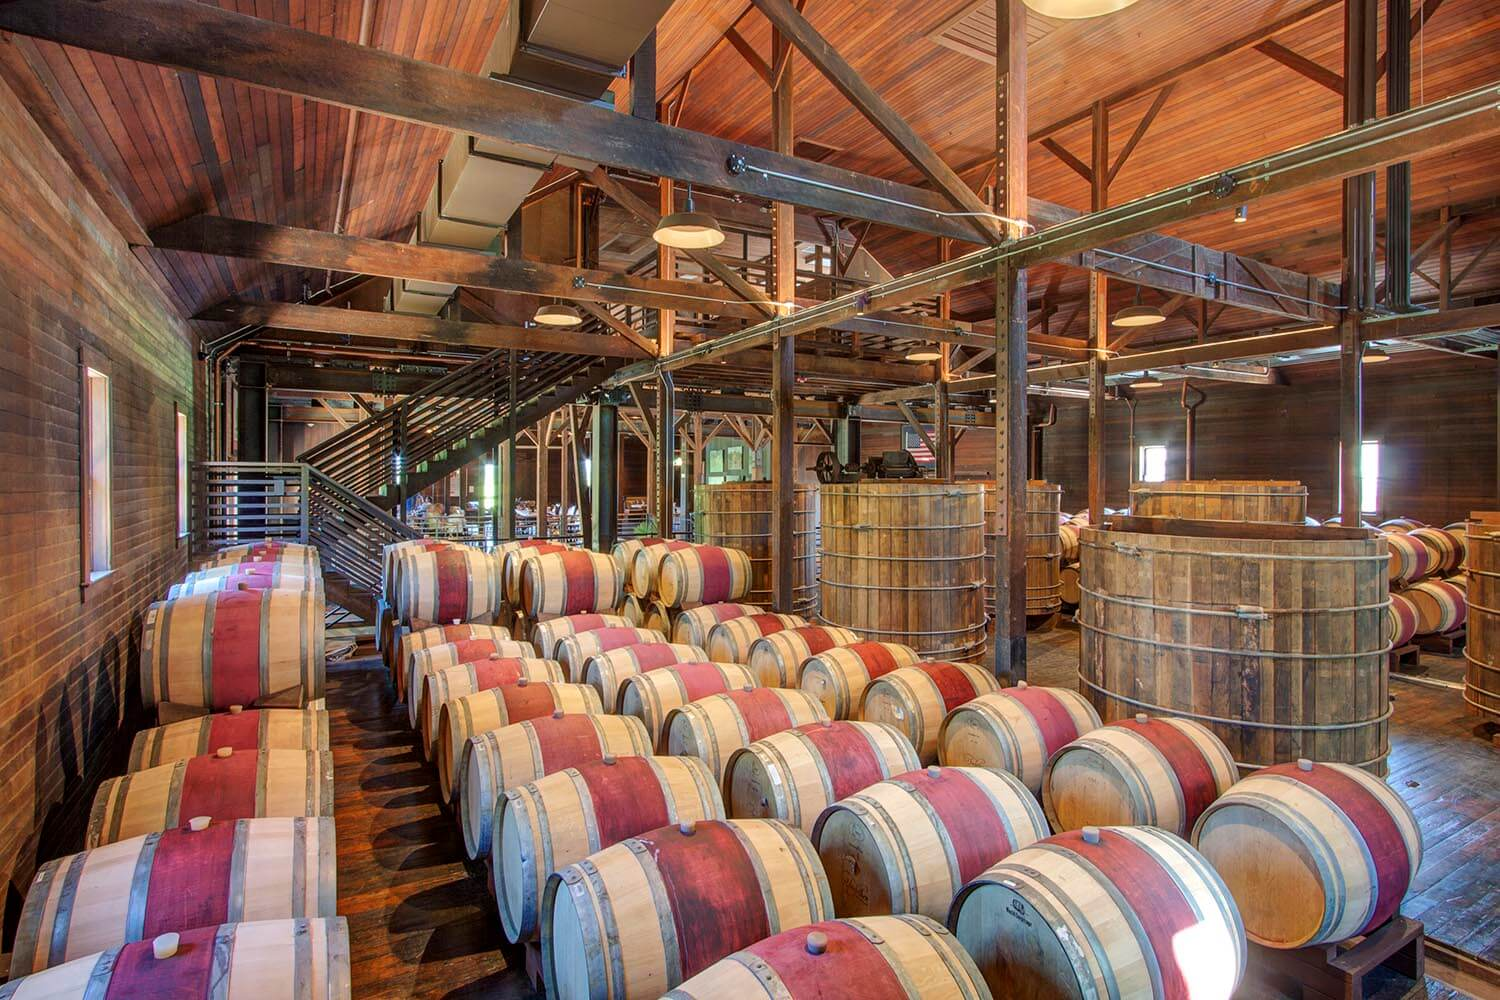 Interior view of wine barrel storage room with wine-stained barrels and other winery equipment